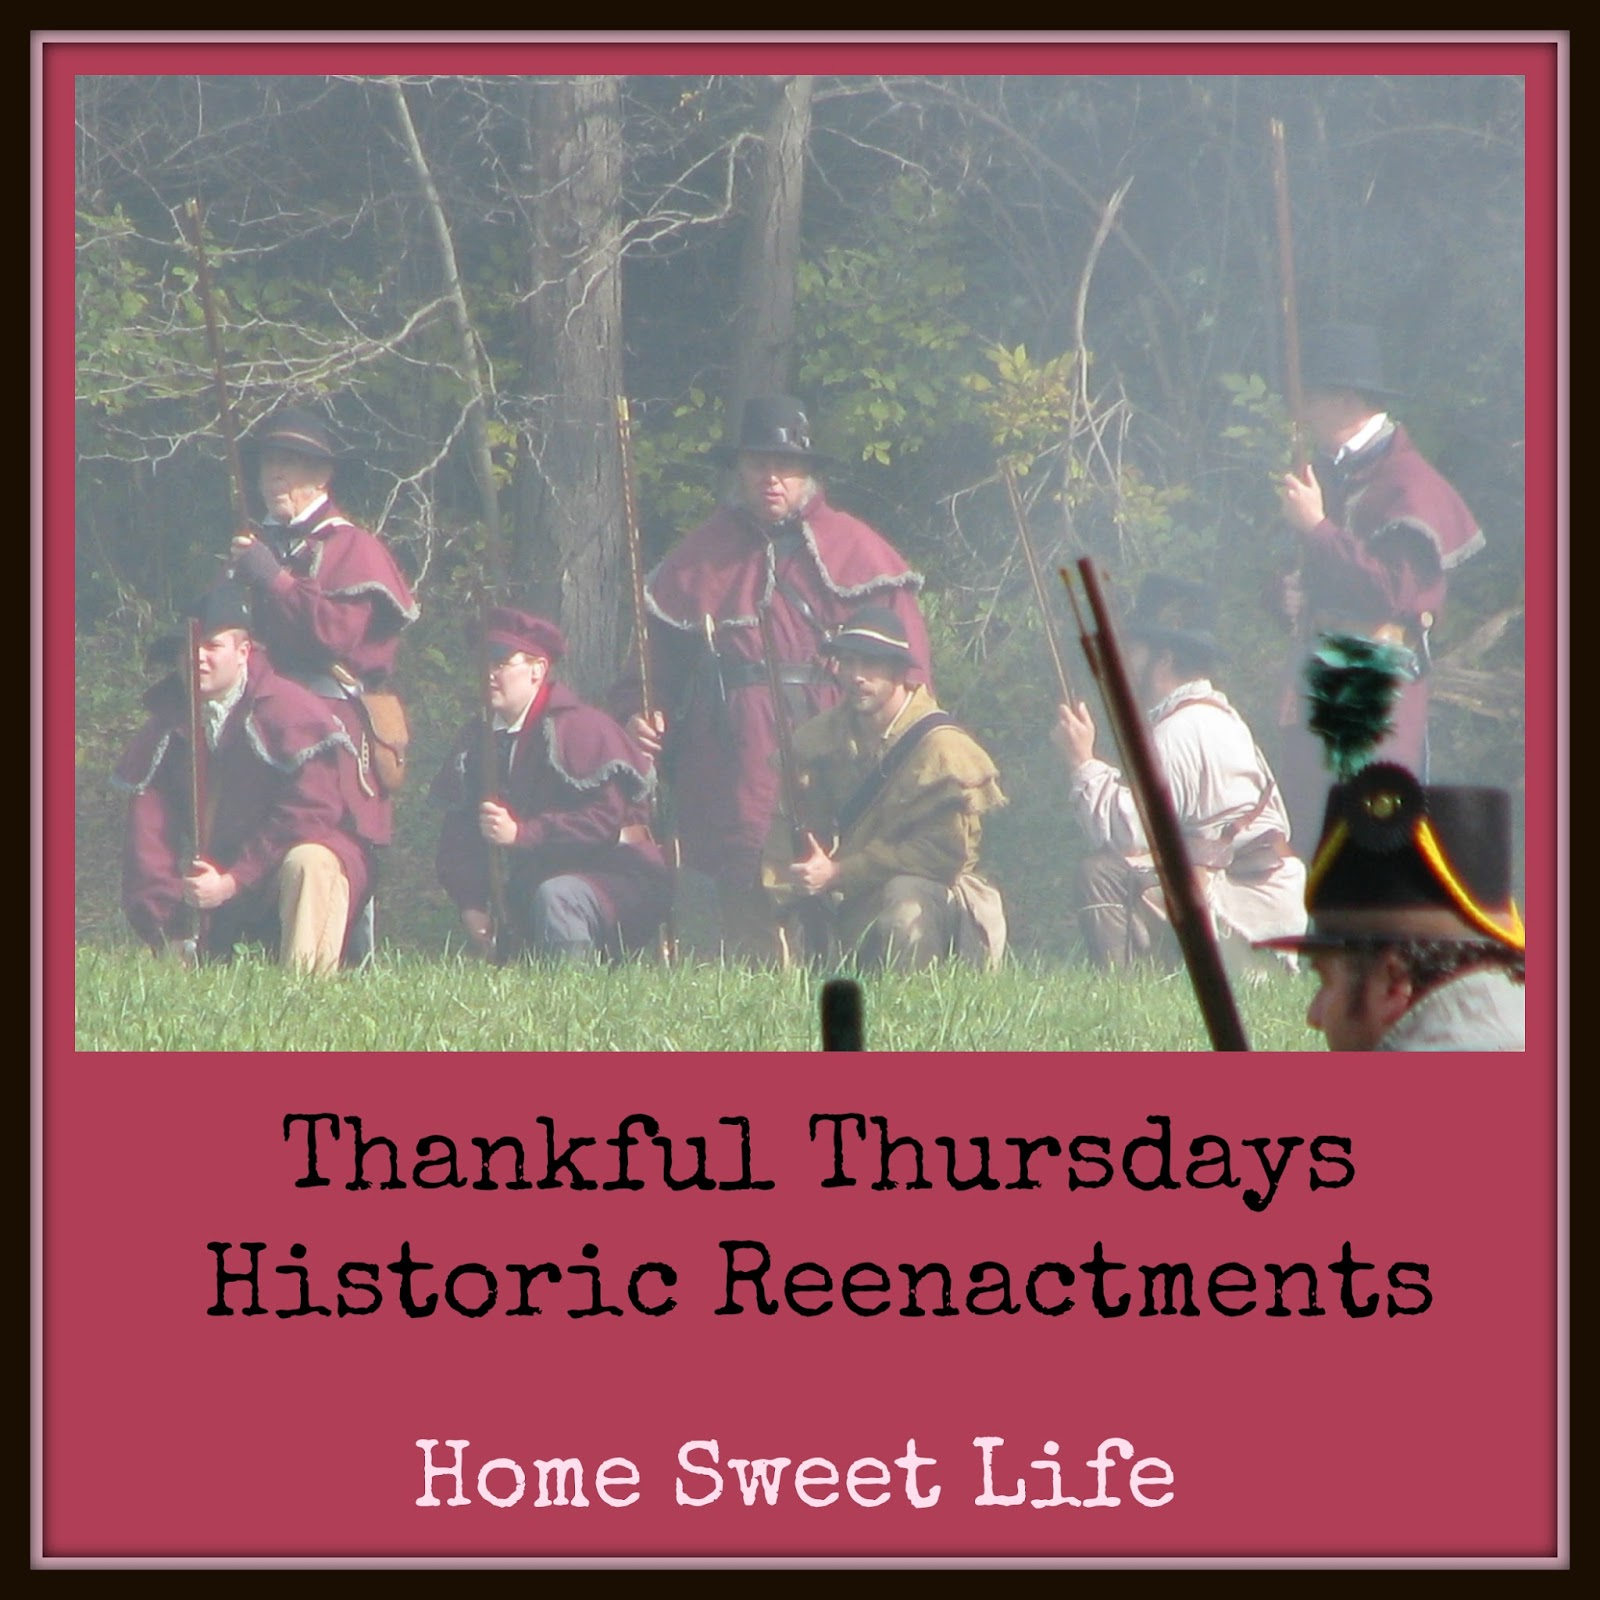 historic reenactments, conner prairie, mississinewa 1812